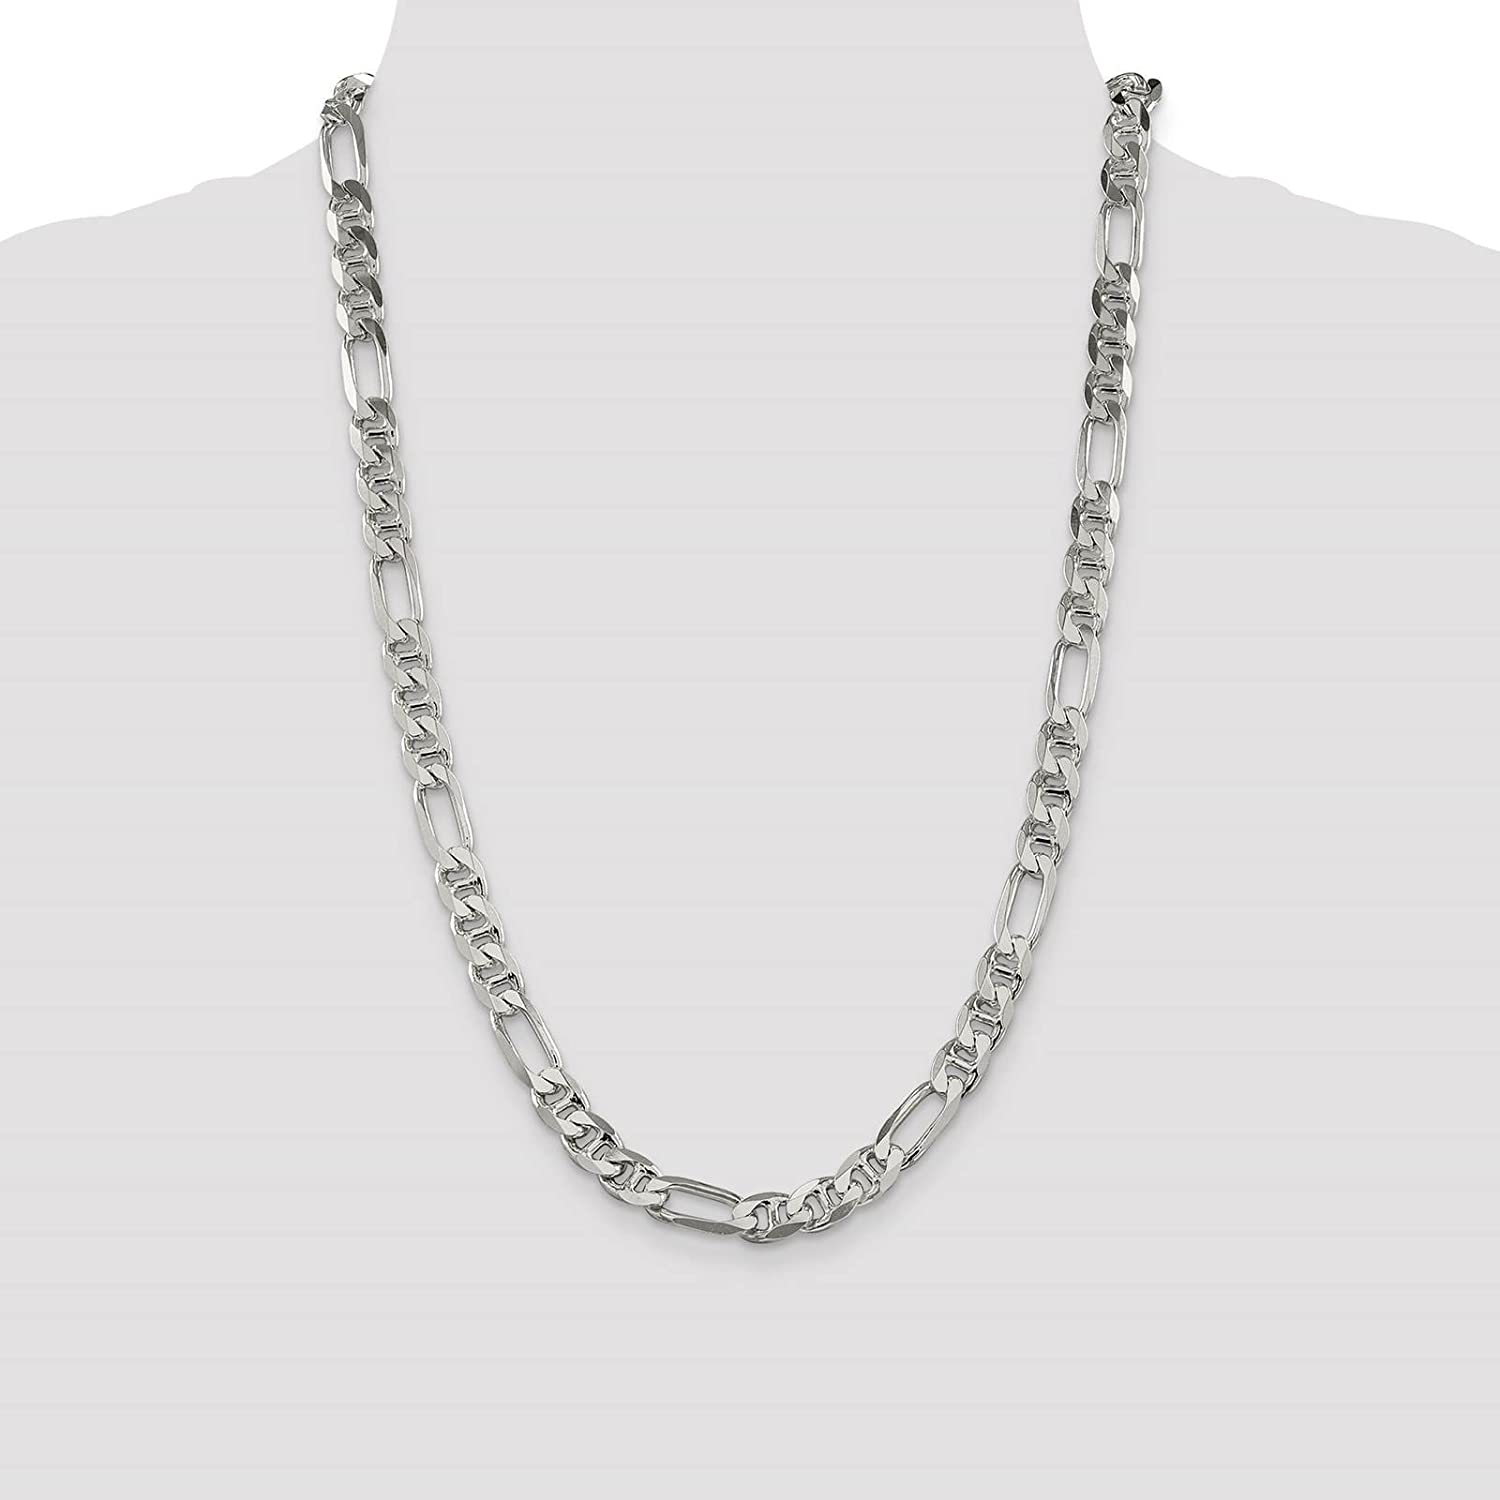 925 Sterling Silver 7.7mm Polished Figaro Anchor Link Chain Necklace 7-24